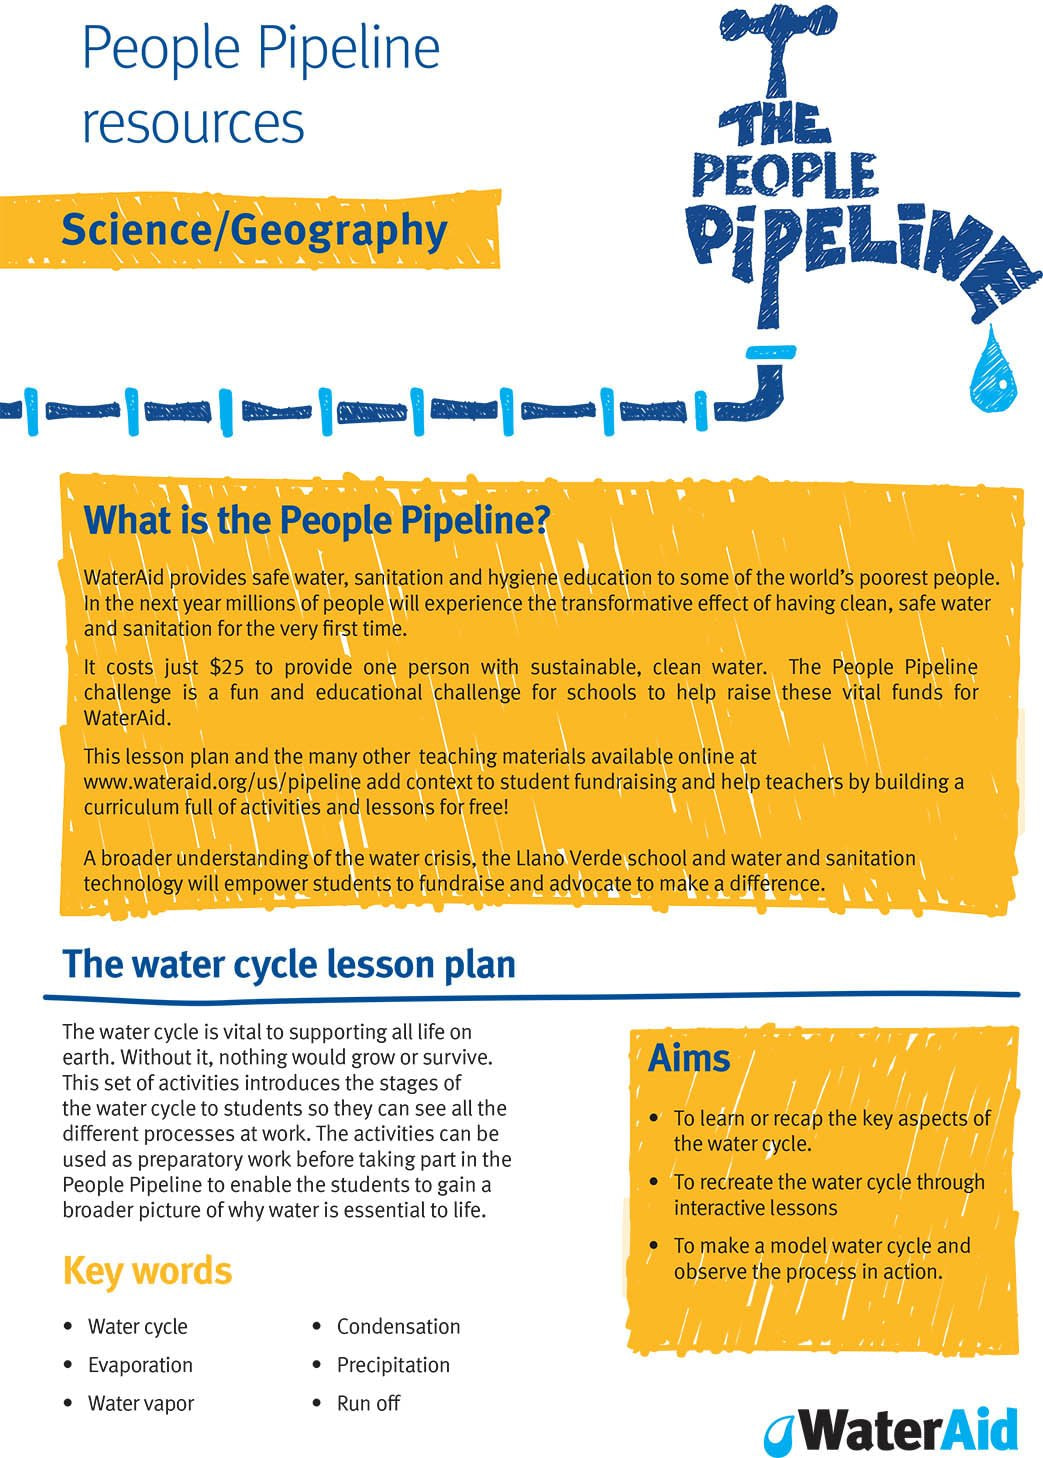 Pupil Pipeline resources: Science/Geography